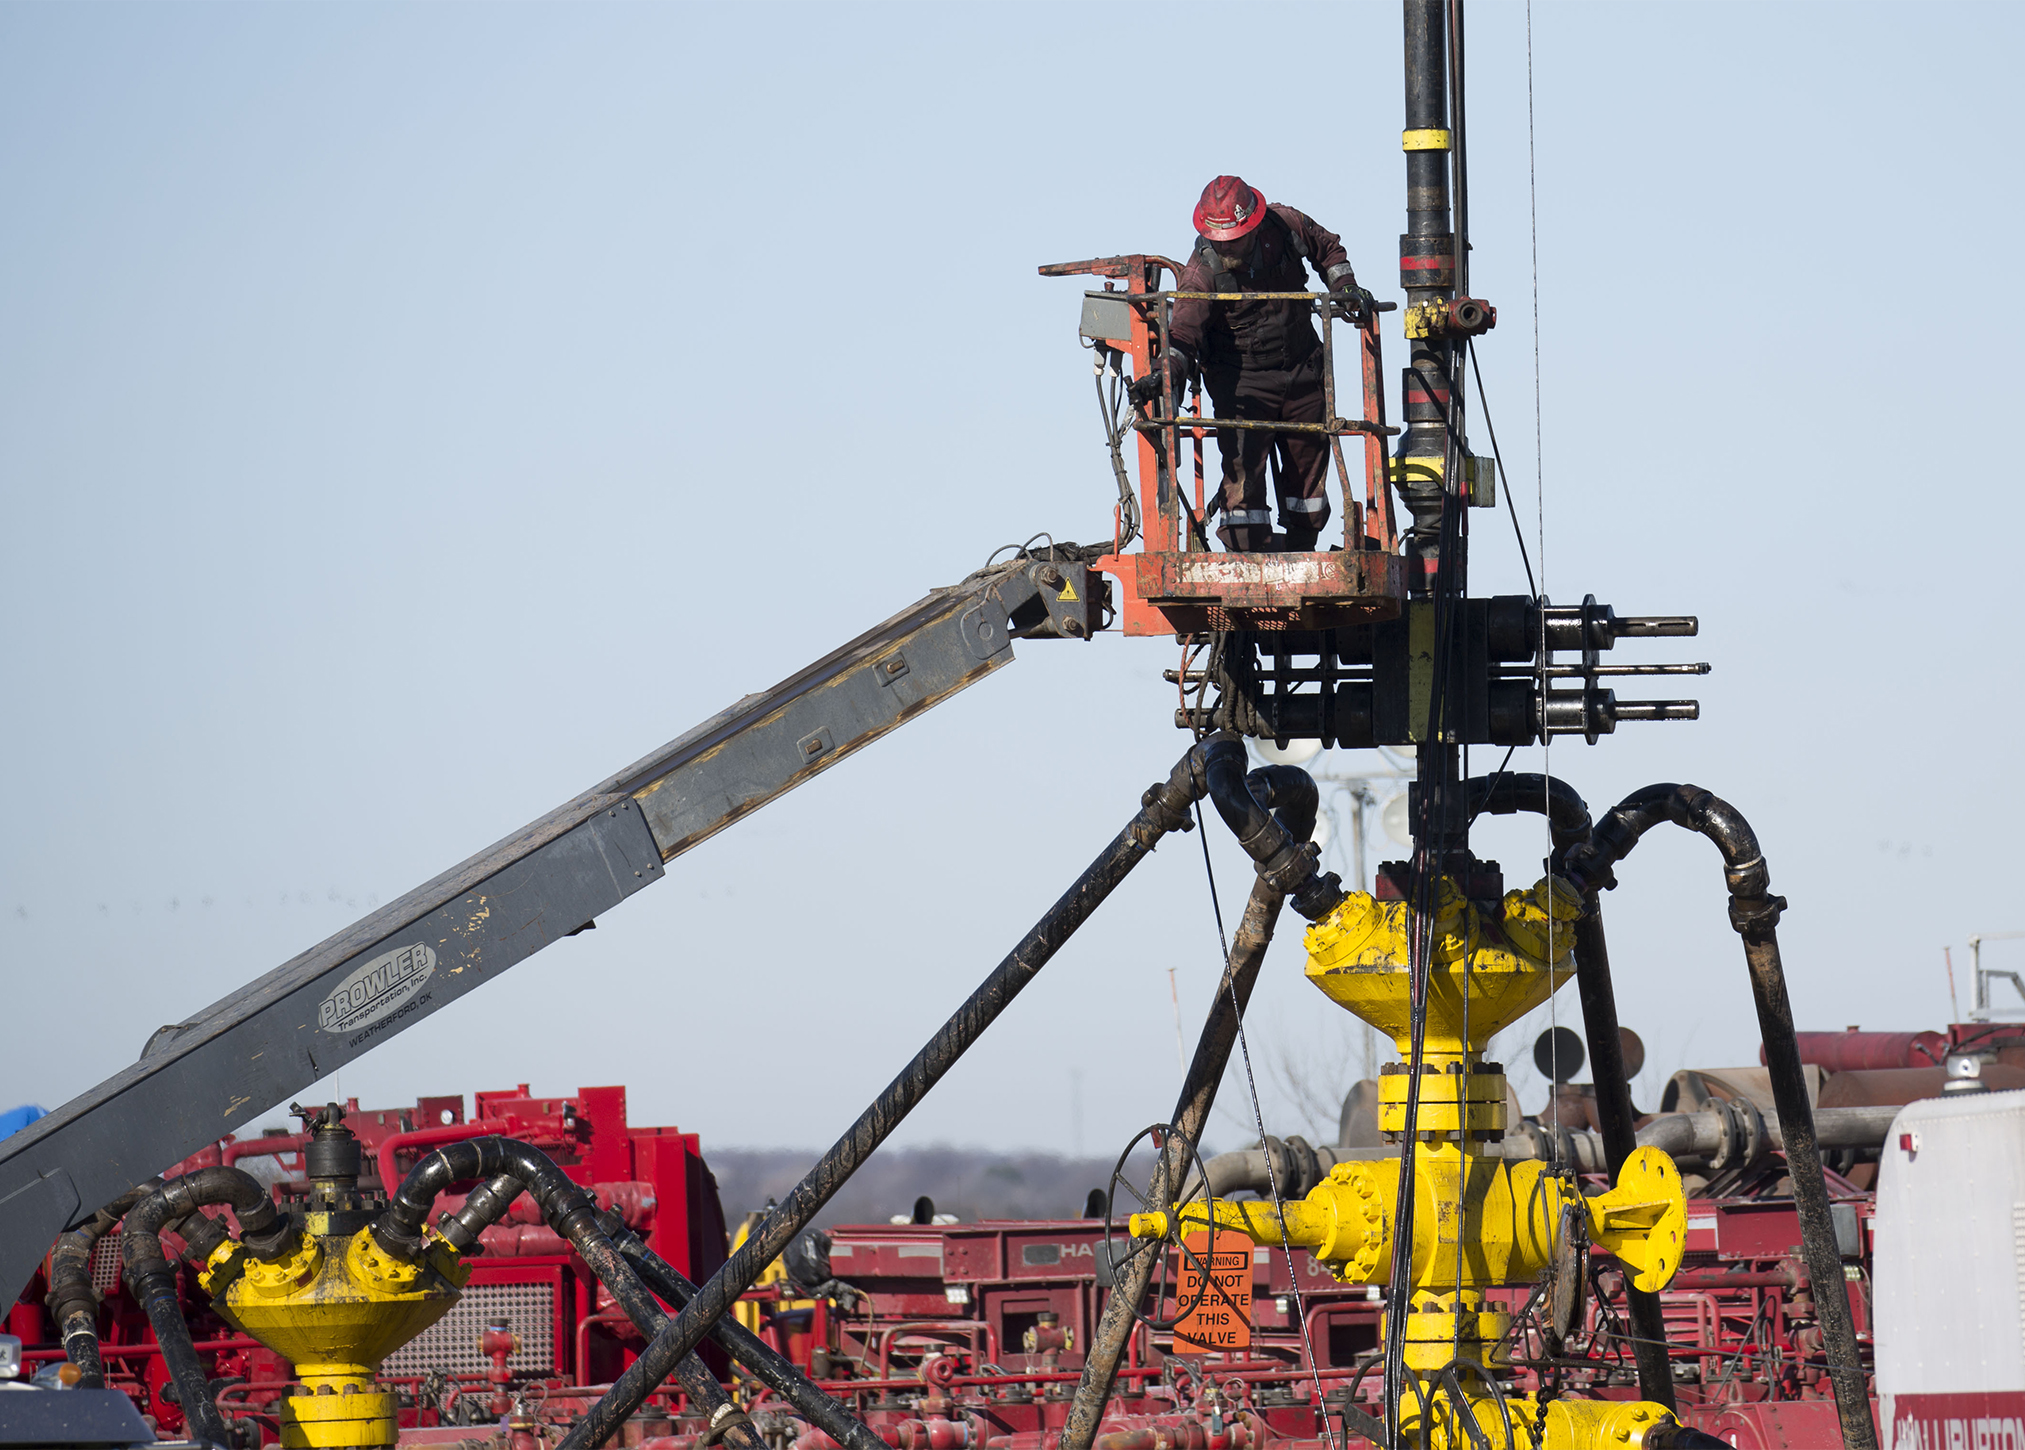 An oil well fielder works at a fracking rig site near Stillwater, Oklahoma.